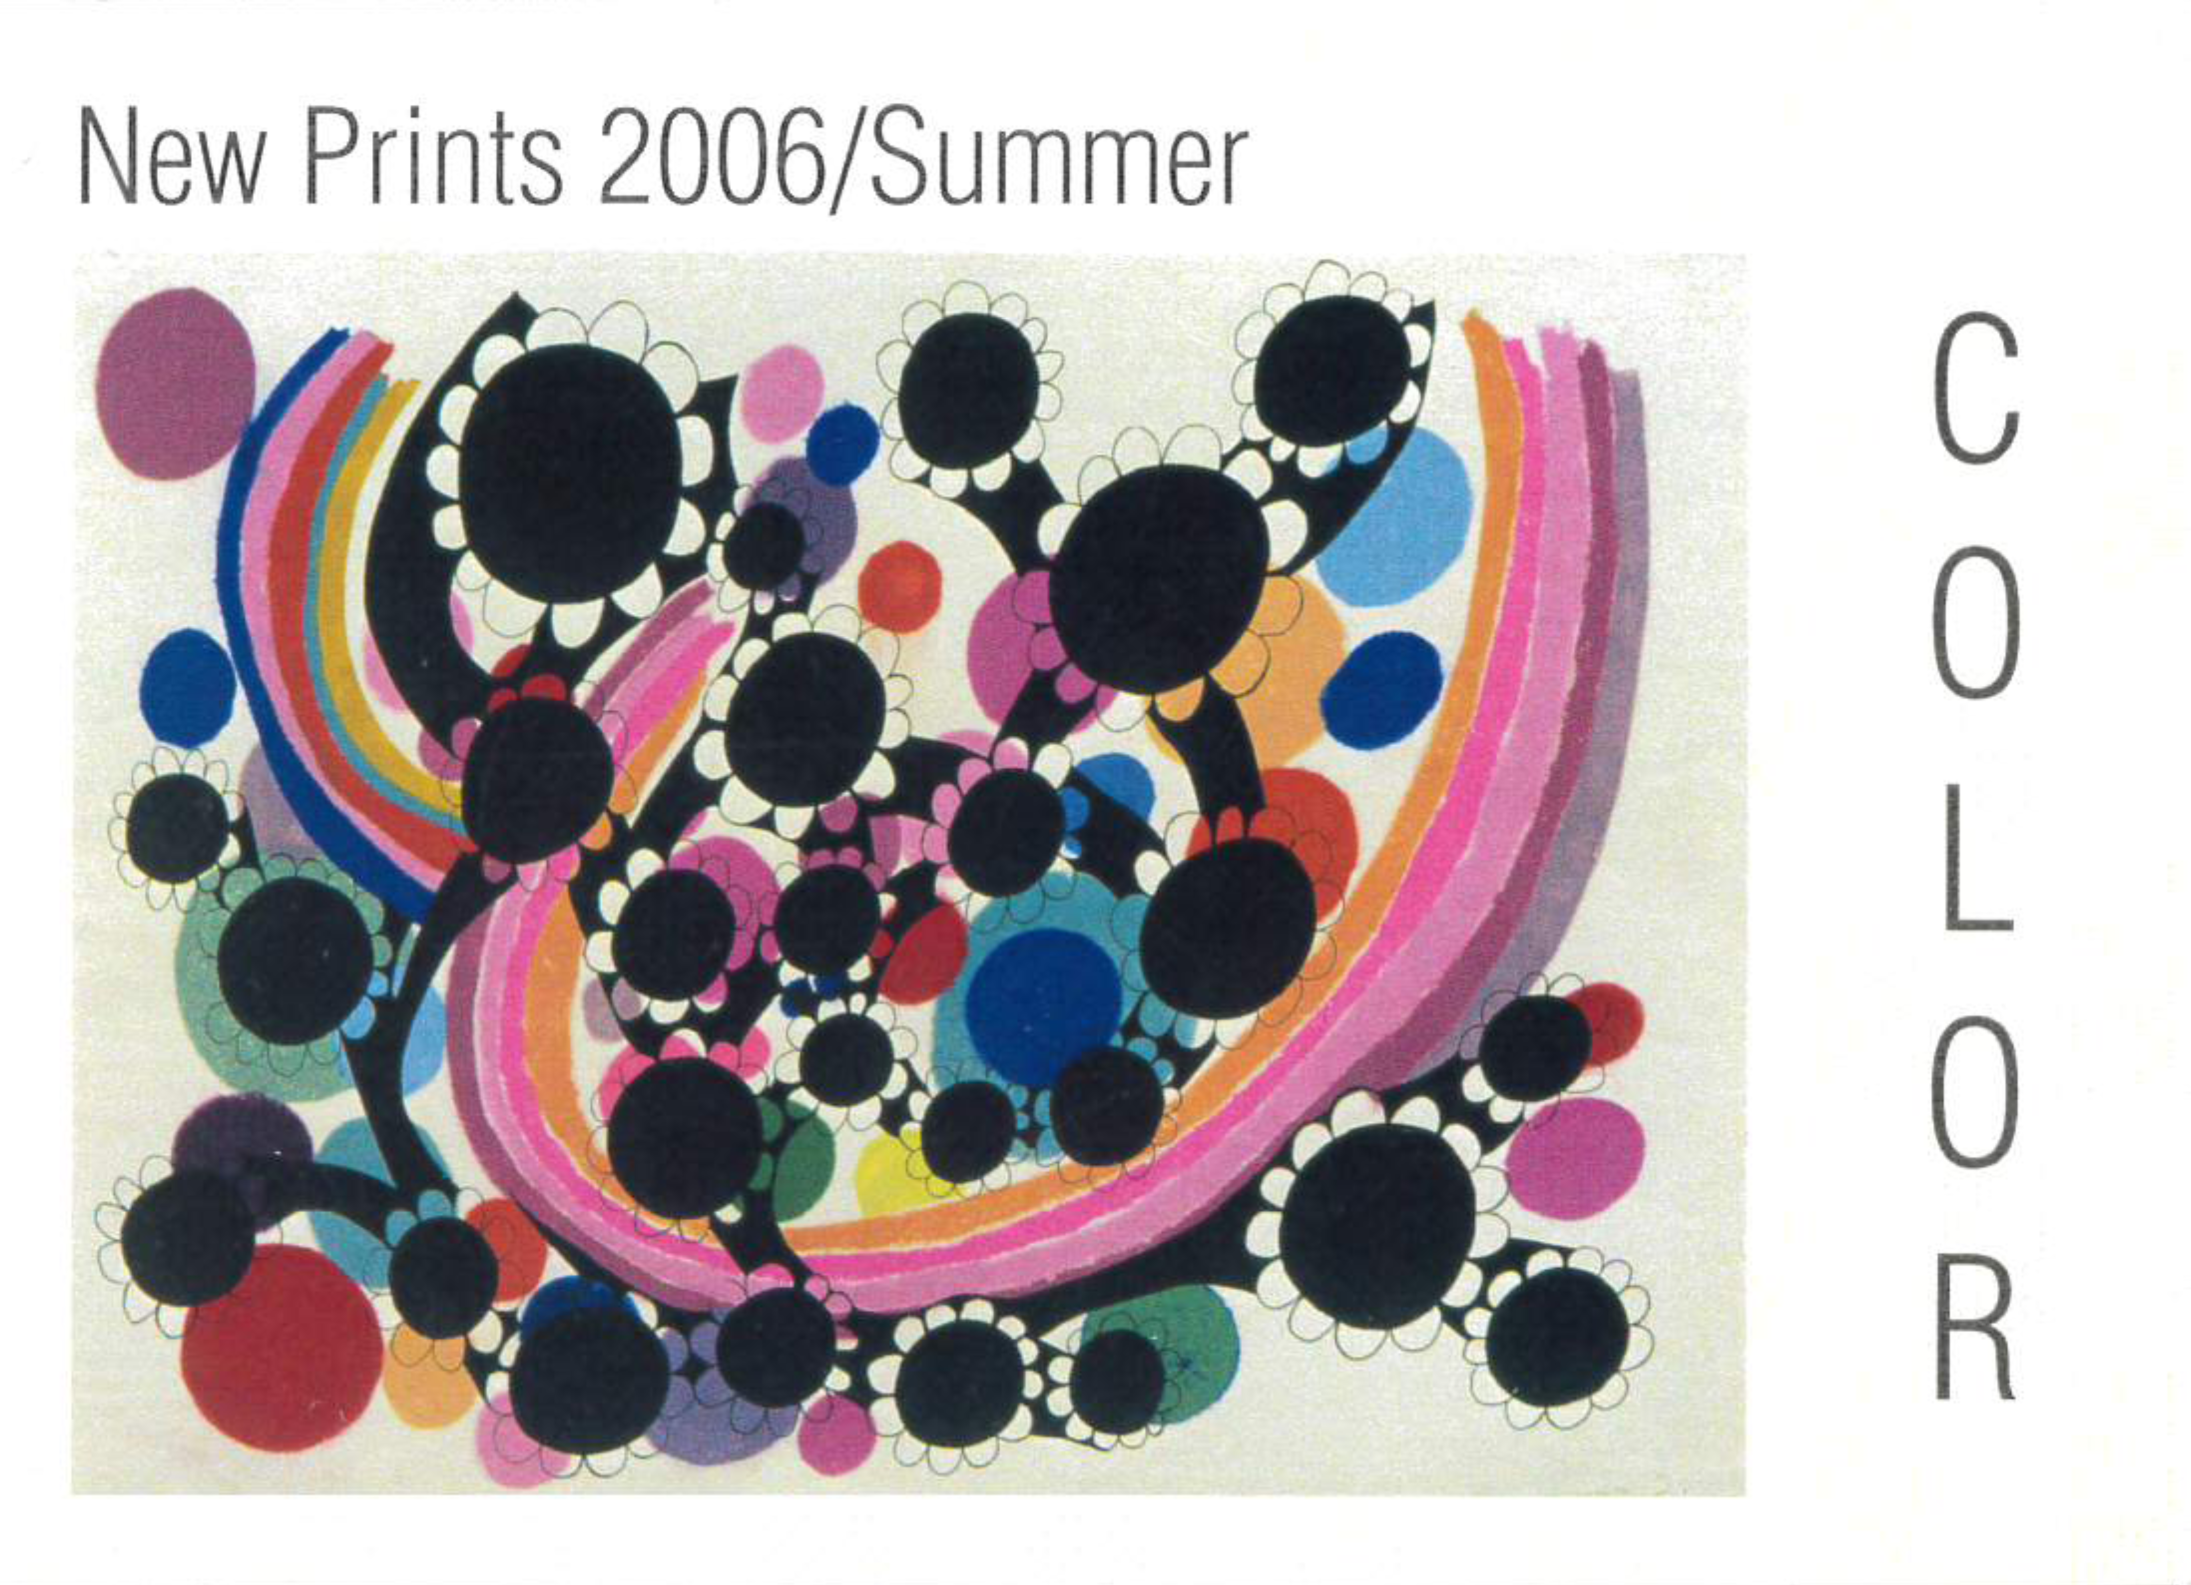 New Prints_2006 Summer.png